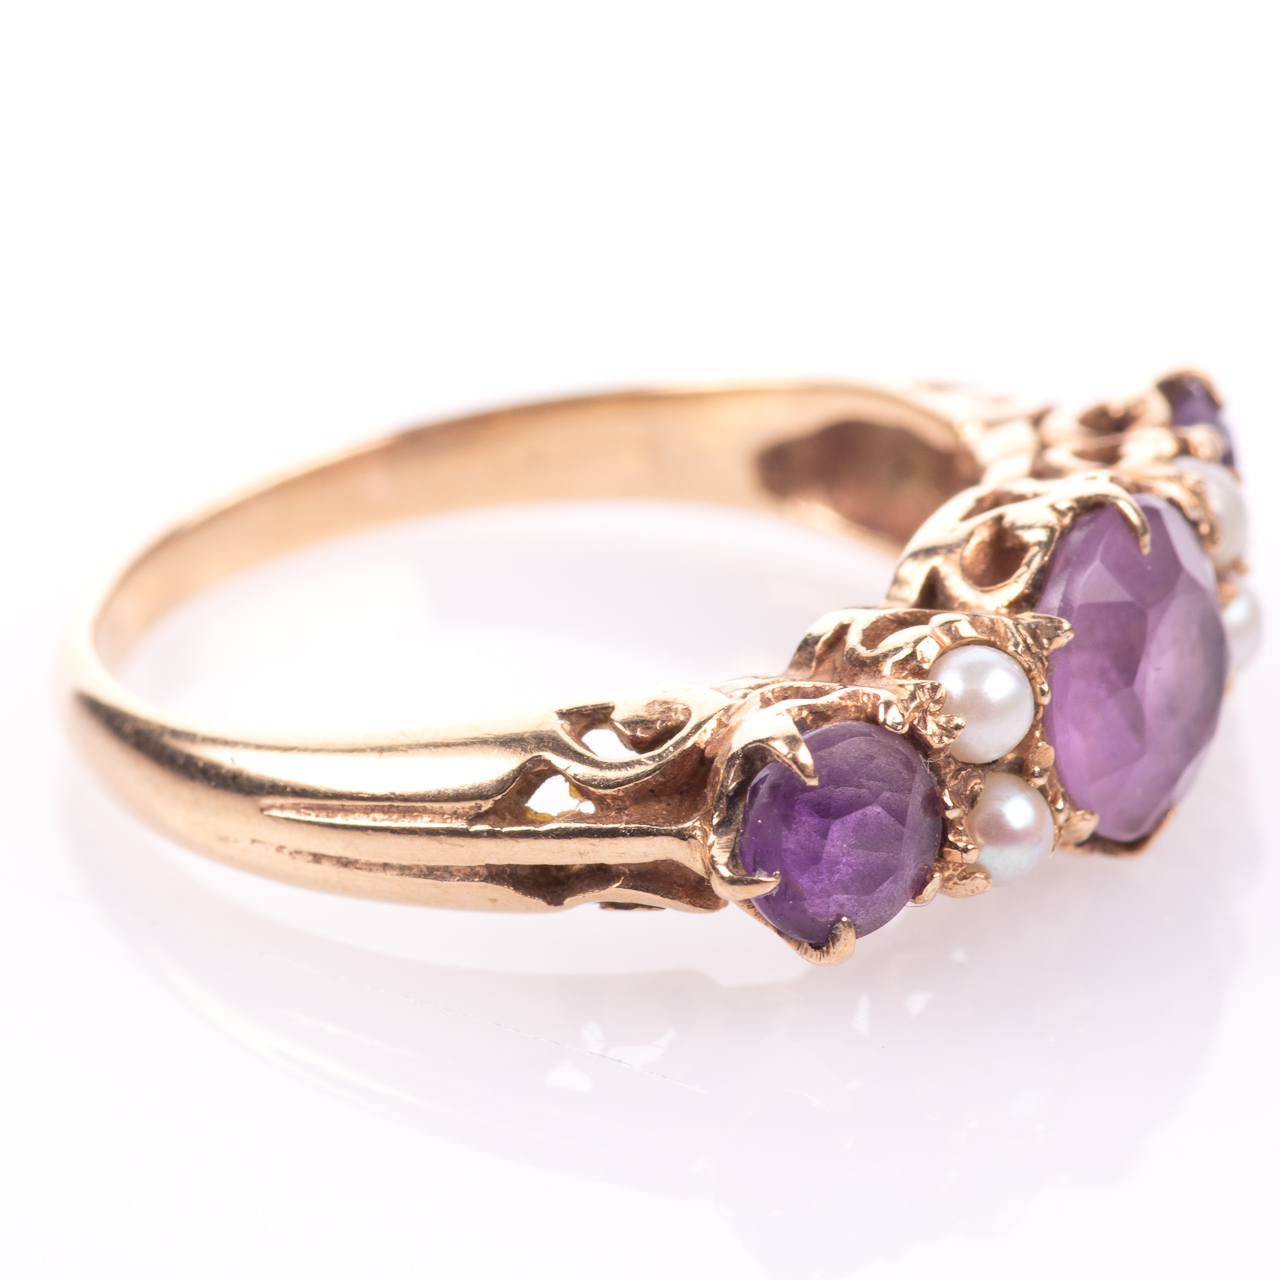 9ct Gold 2.10ct Amethyst & Pearl Ring - Image 7 of 7